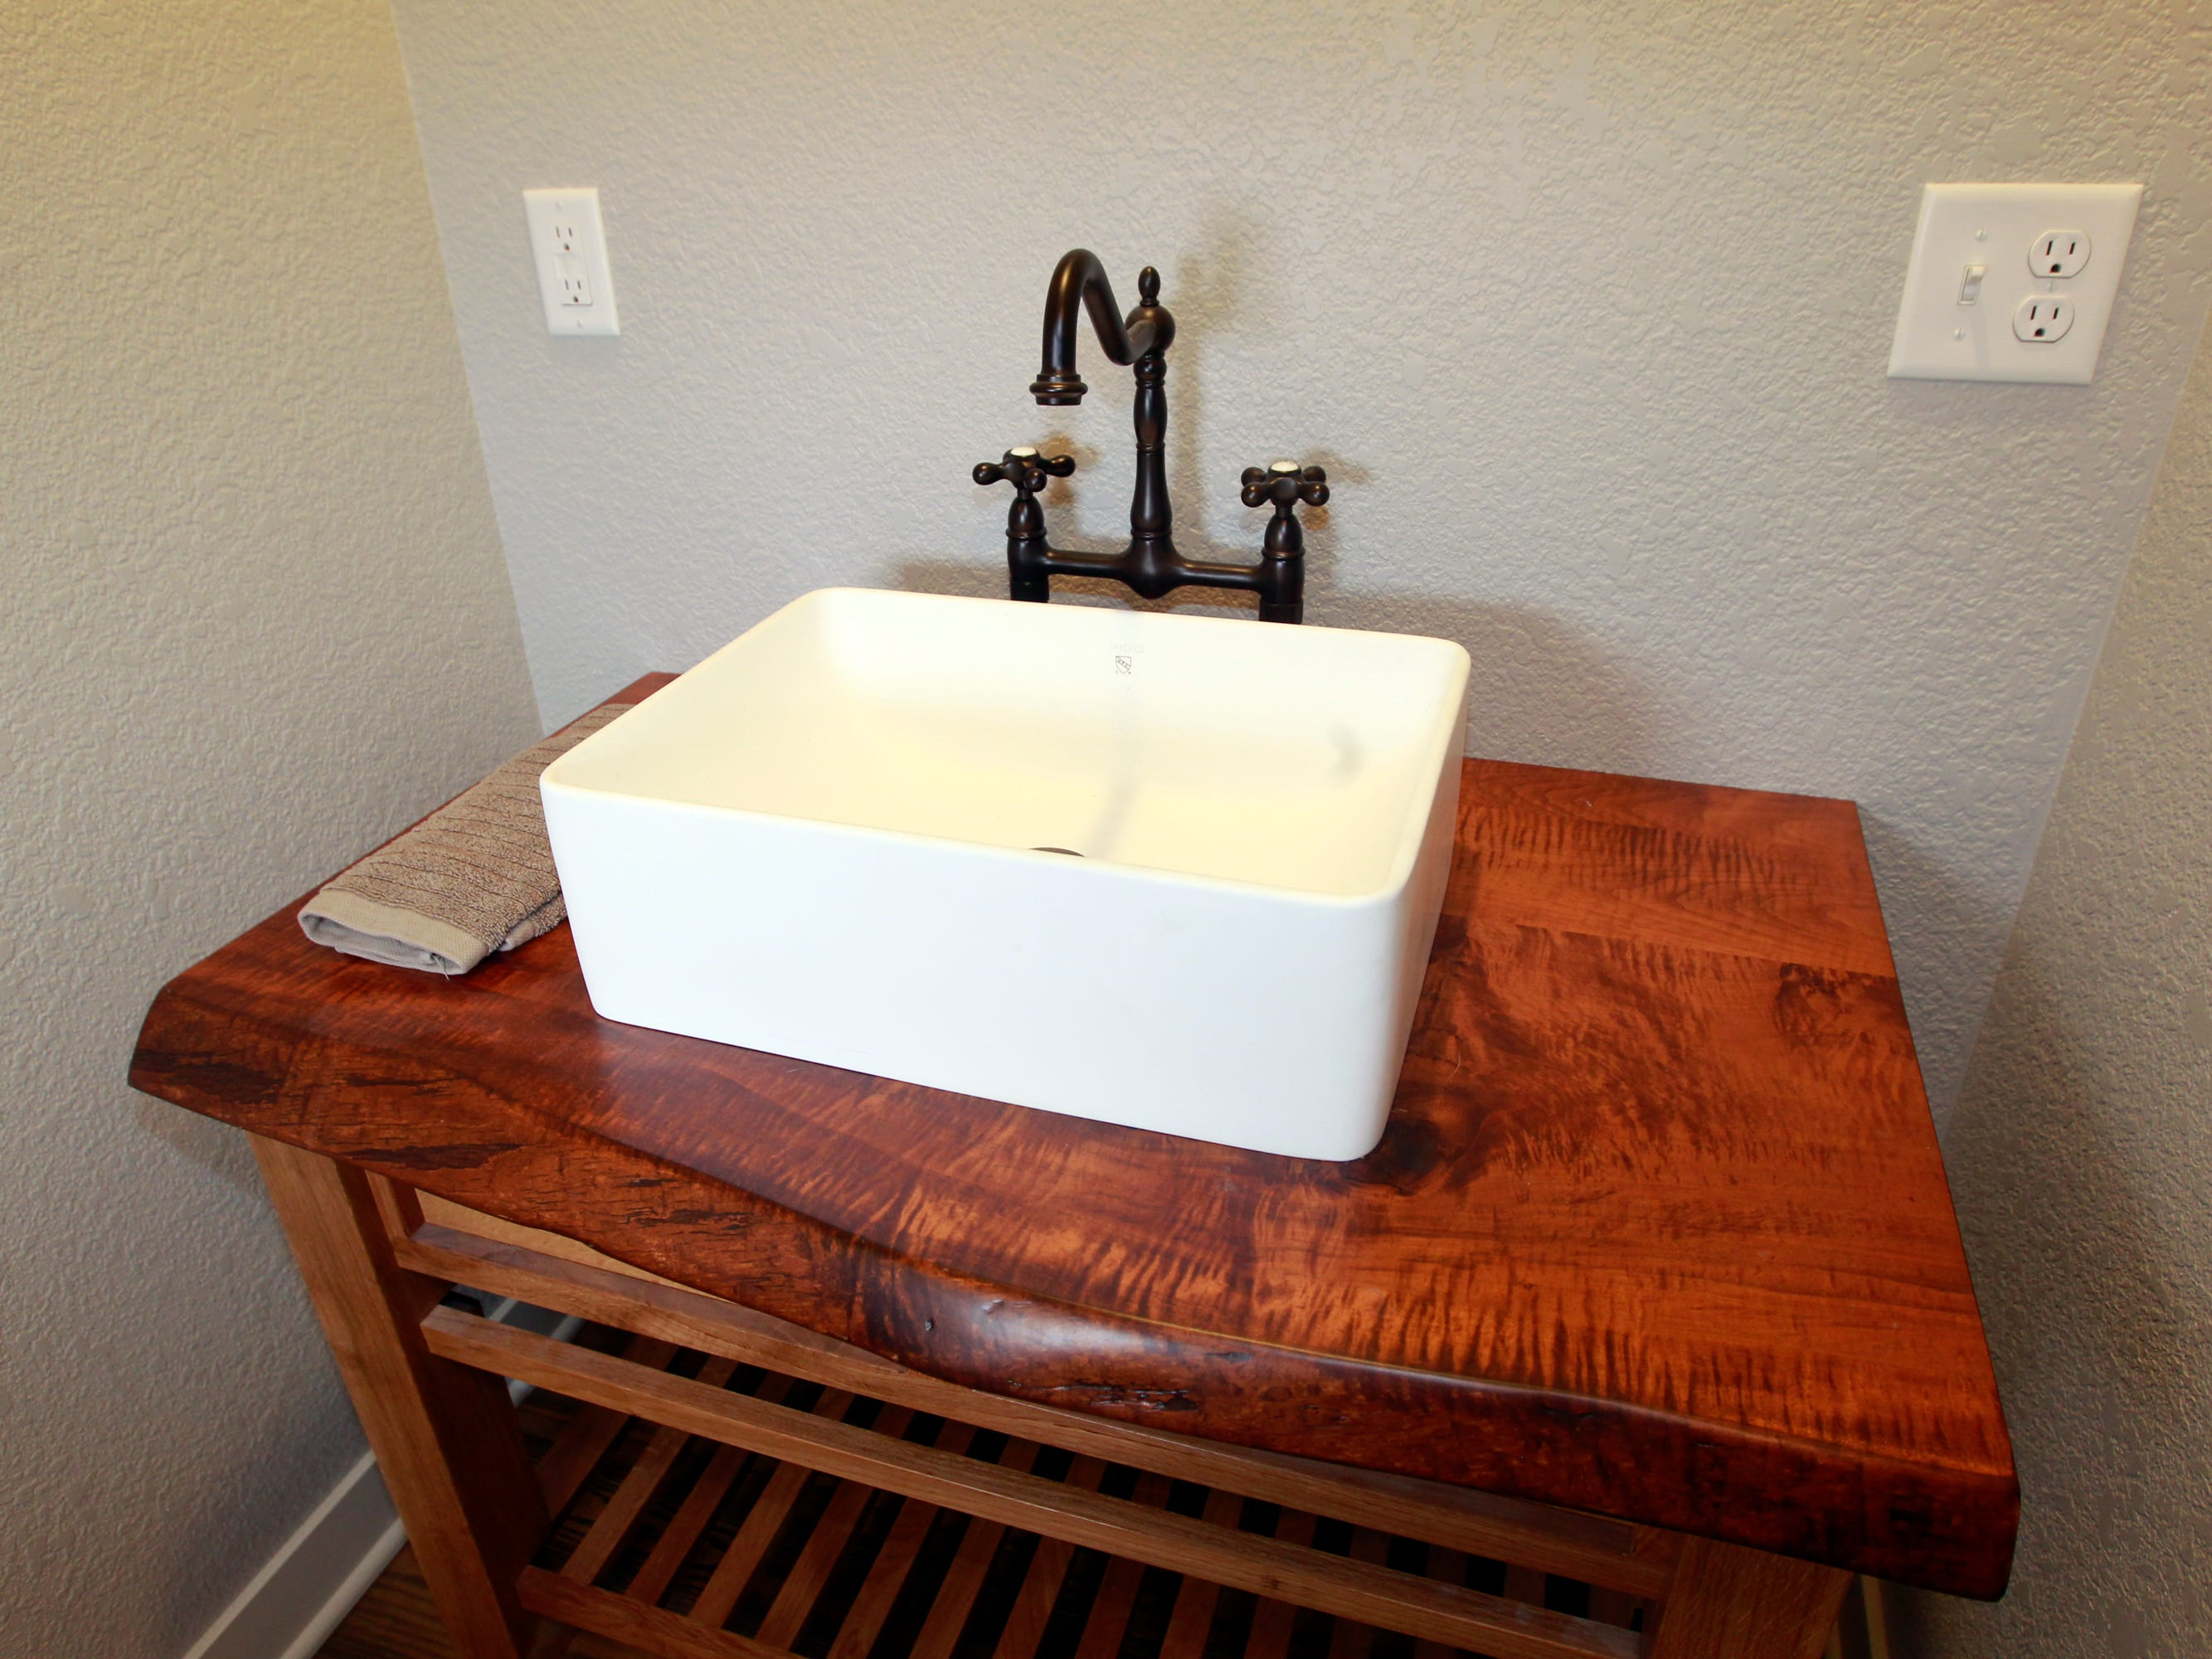 A curly maple live-edge top with a white vessel sink and brass fixtures is in the laundry room.